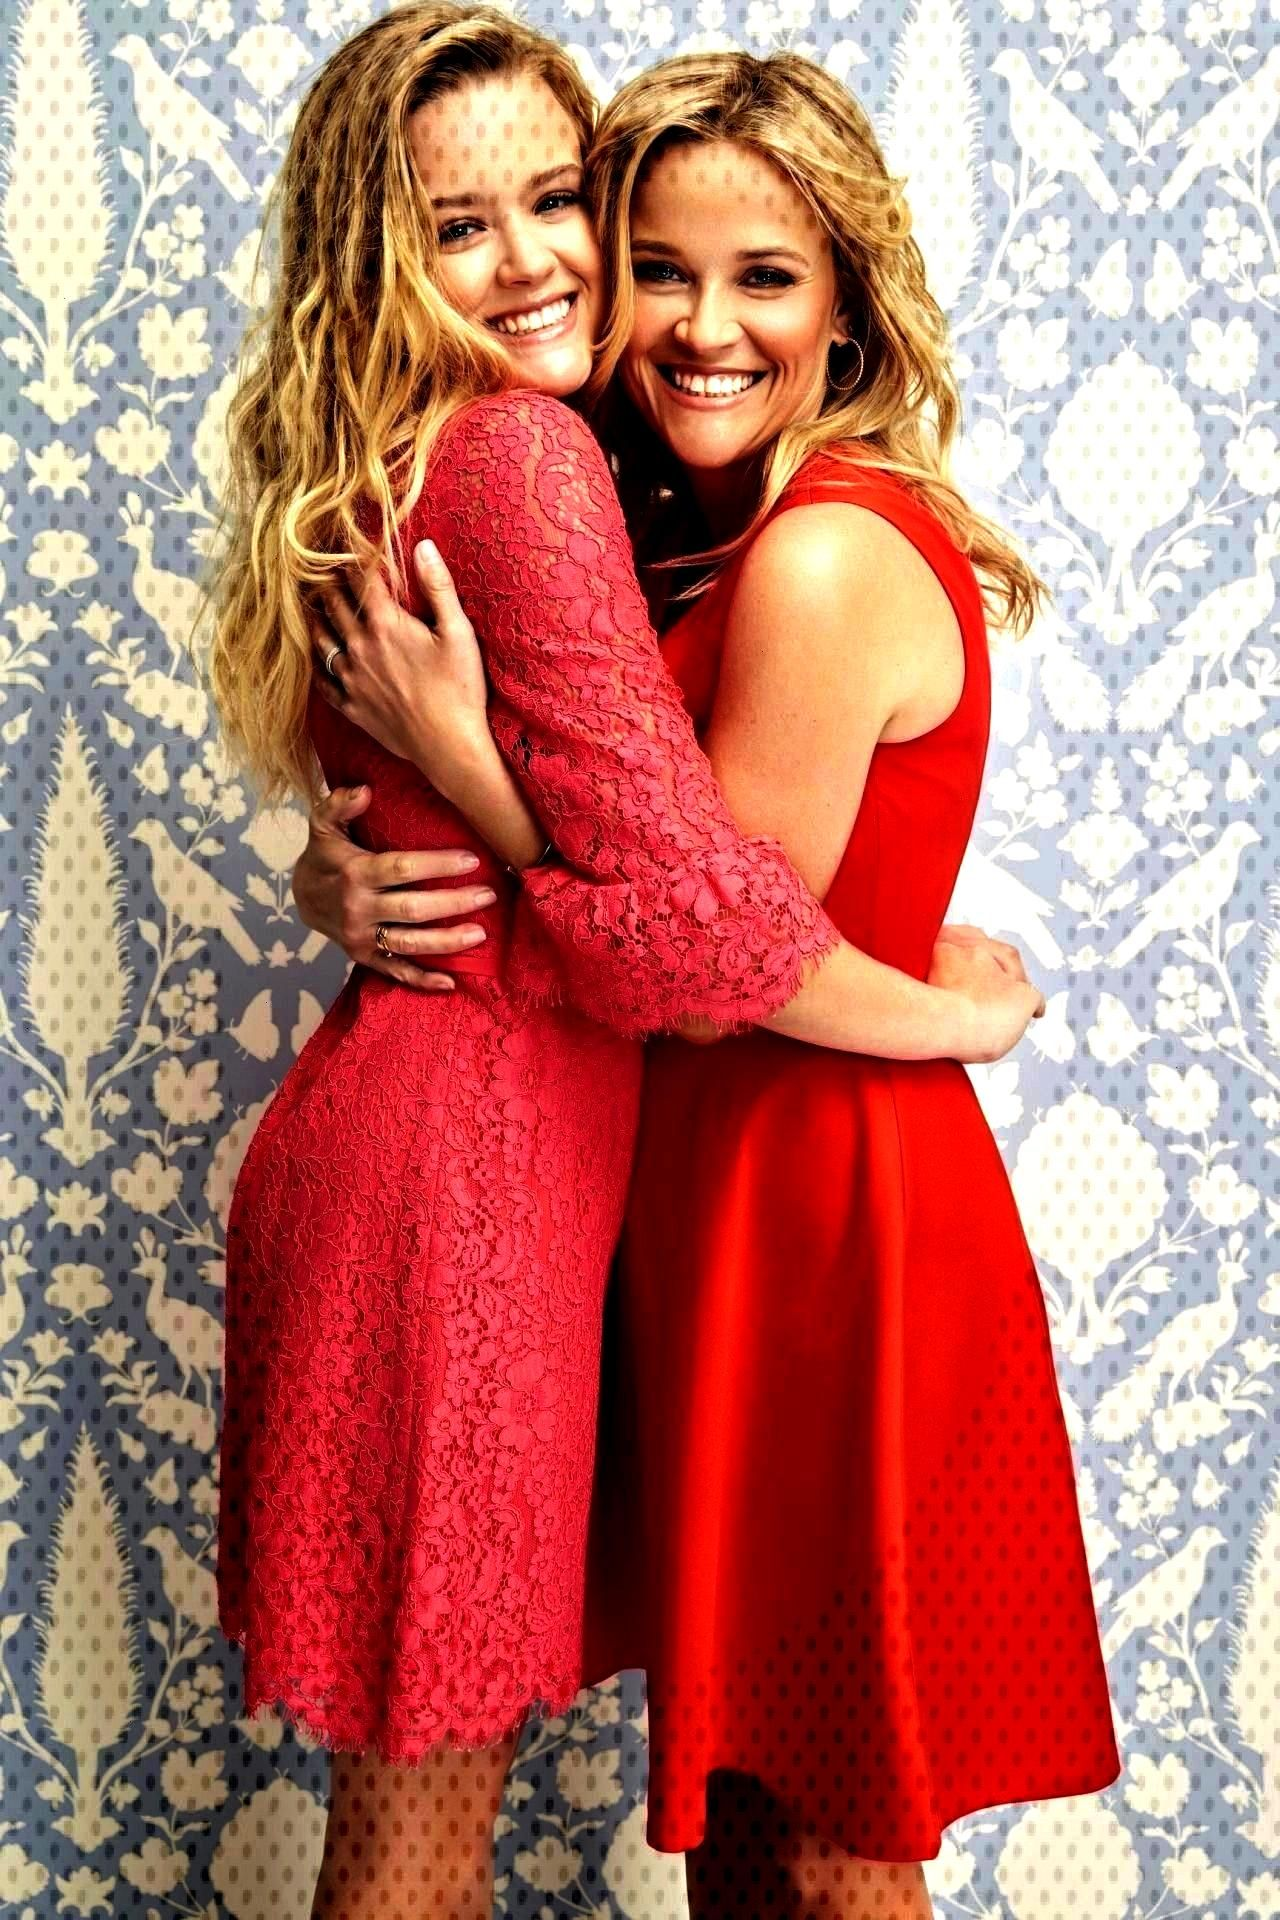 Daughter Ava Phillippe – Valentines Day Campaign 2018 -Reese Witherspoon and Daughter Ava Phillip